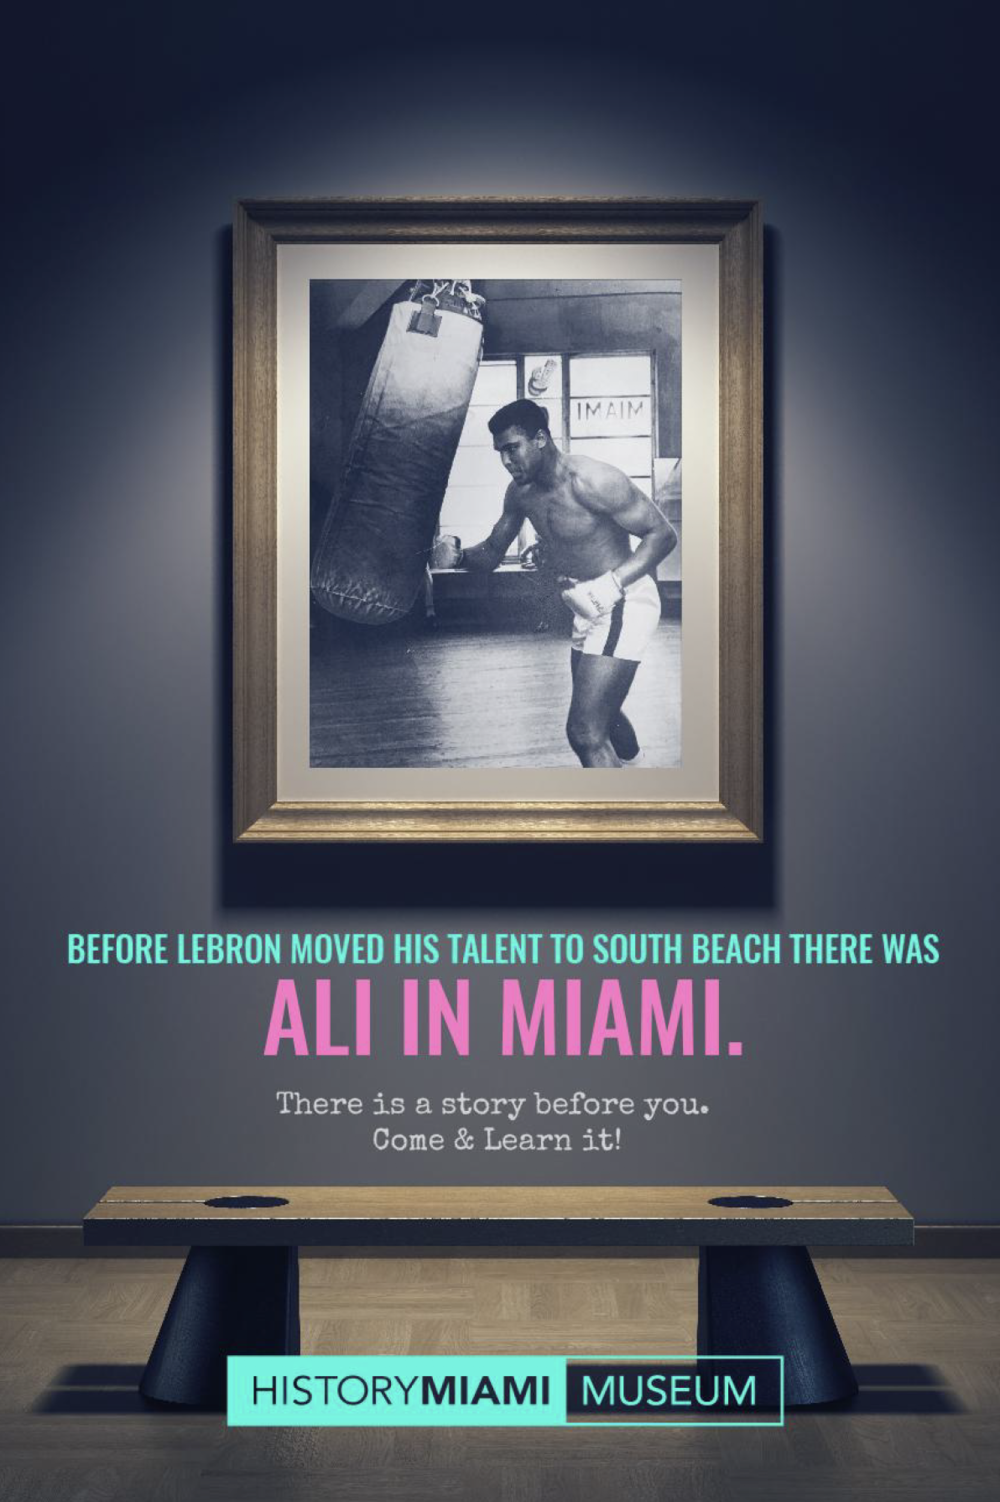 - We are conveying to the public a part of history they might have missed. We connect today's events, objects, and people with Miami's past. By placing the text in a way that entices the public to read its entirety after being teased by a bold headline, history is presented visually, to imply ownership and patrimony.